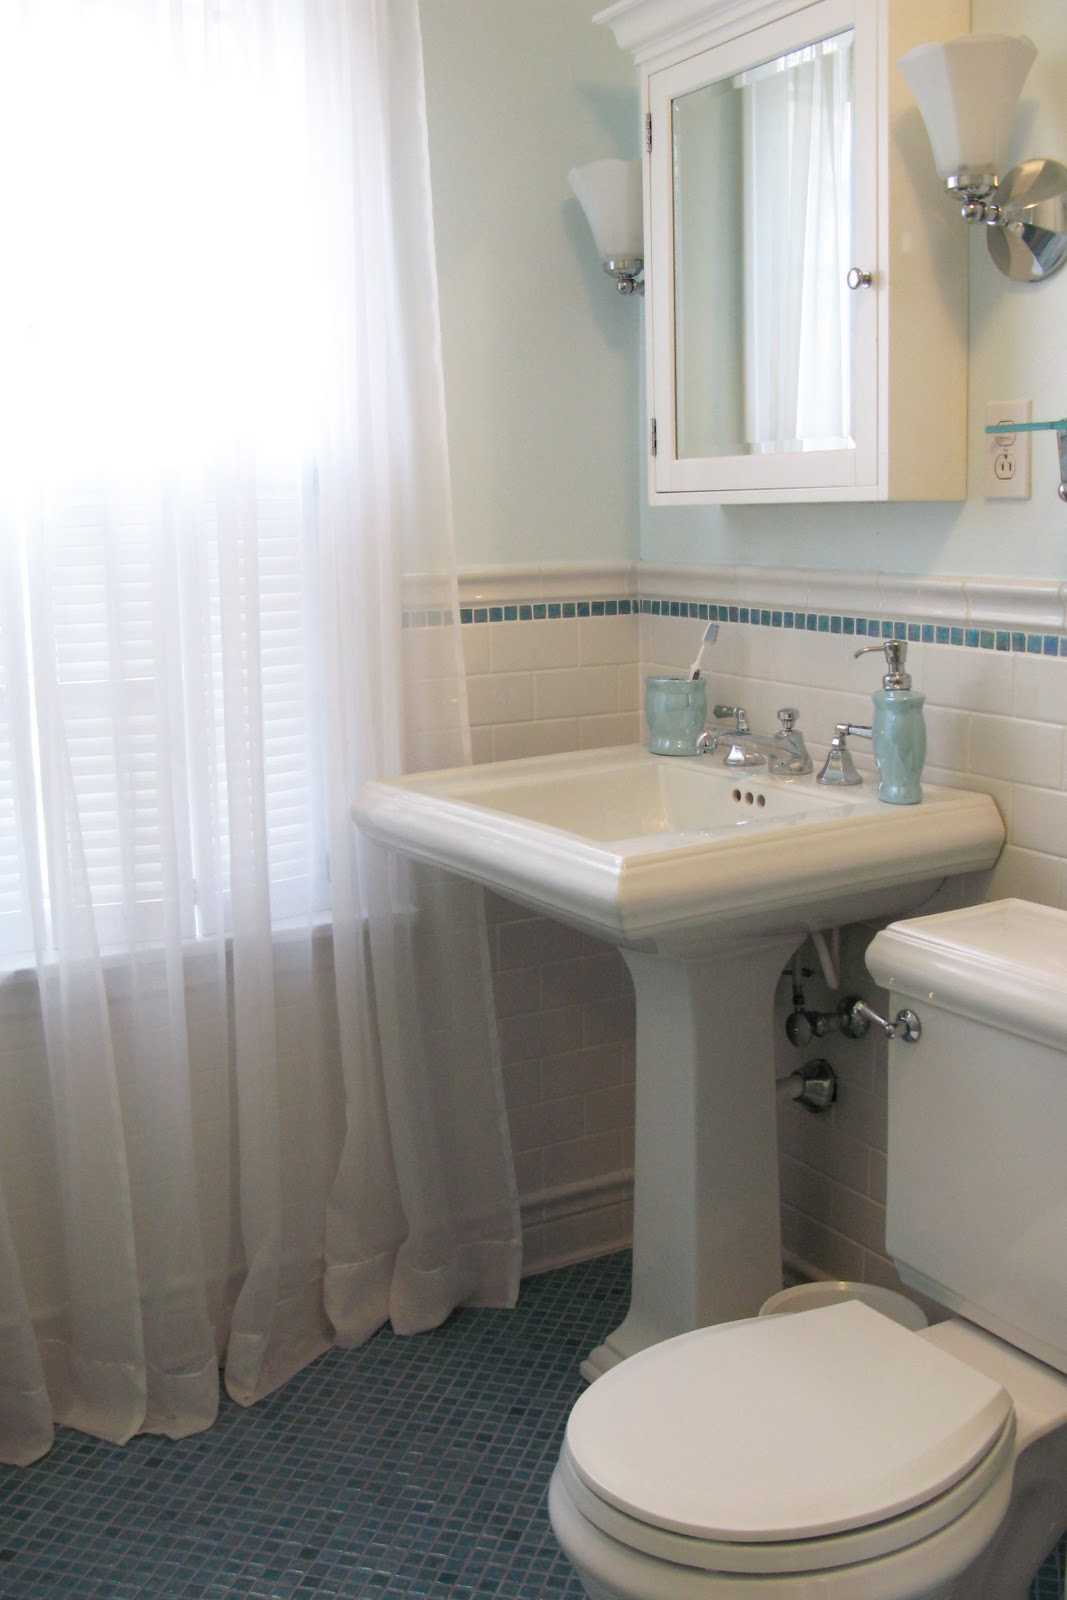 - Pedestal Sink With Backsplash - Everything You Need To Know About